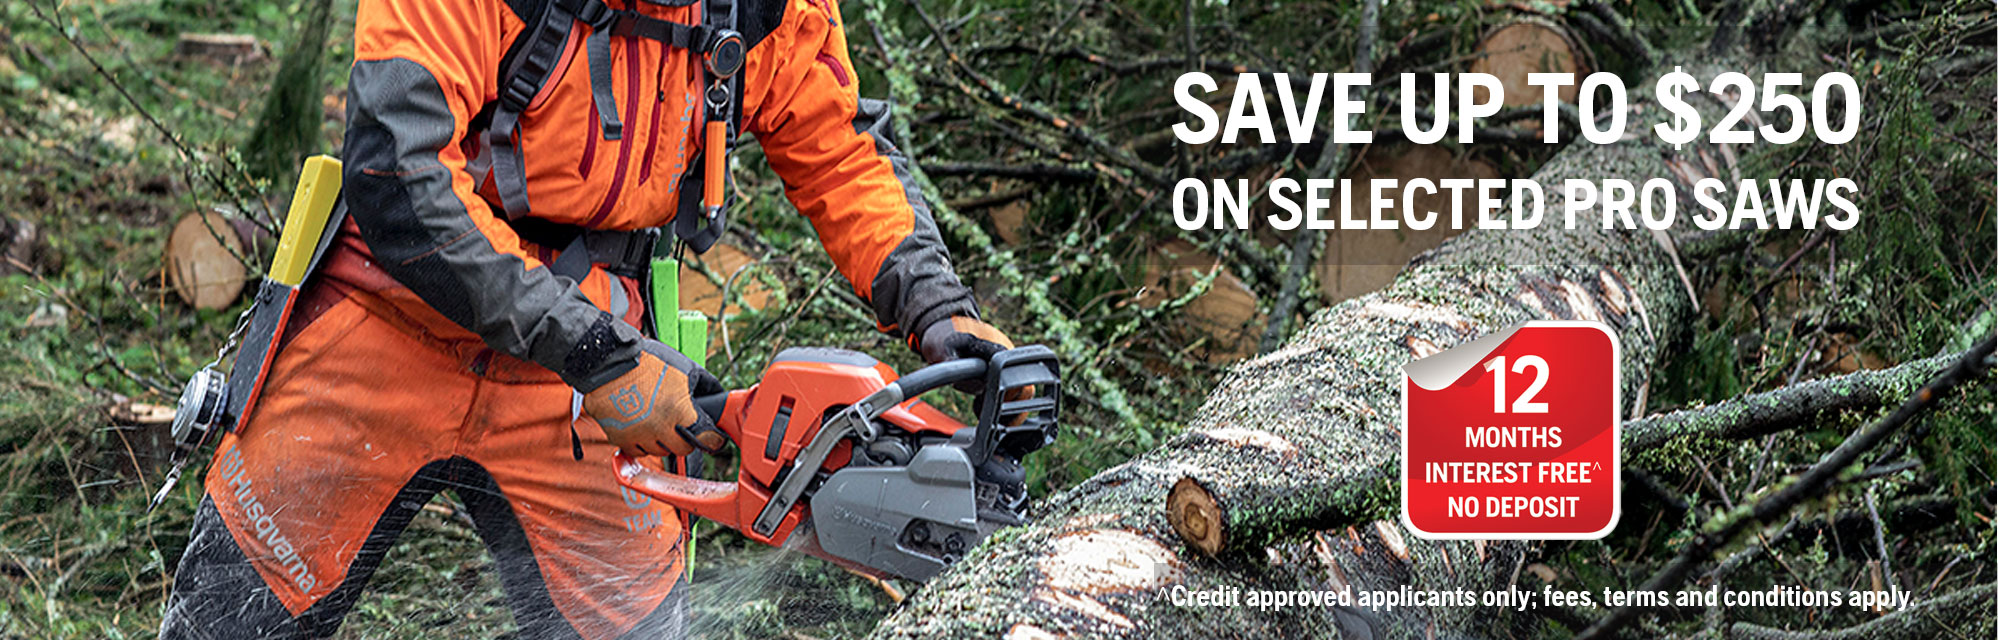 Chainsaws - SAVE UP TO $250